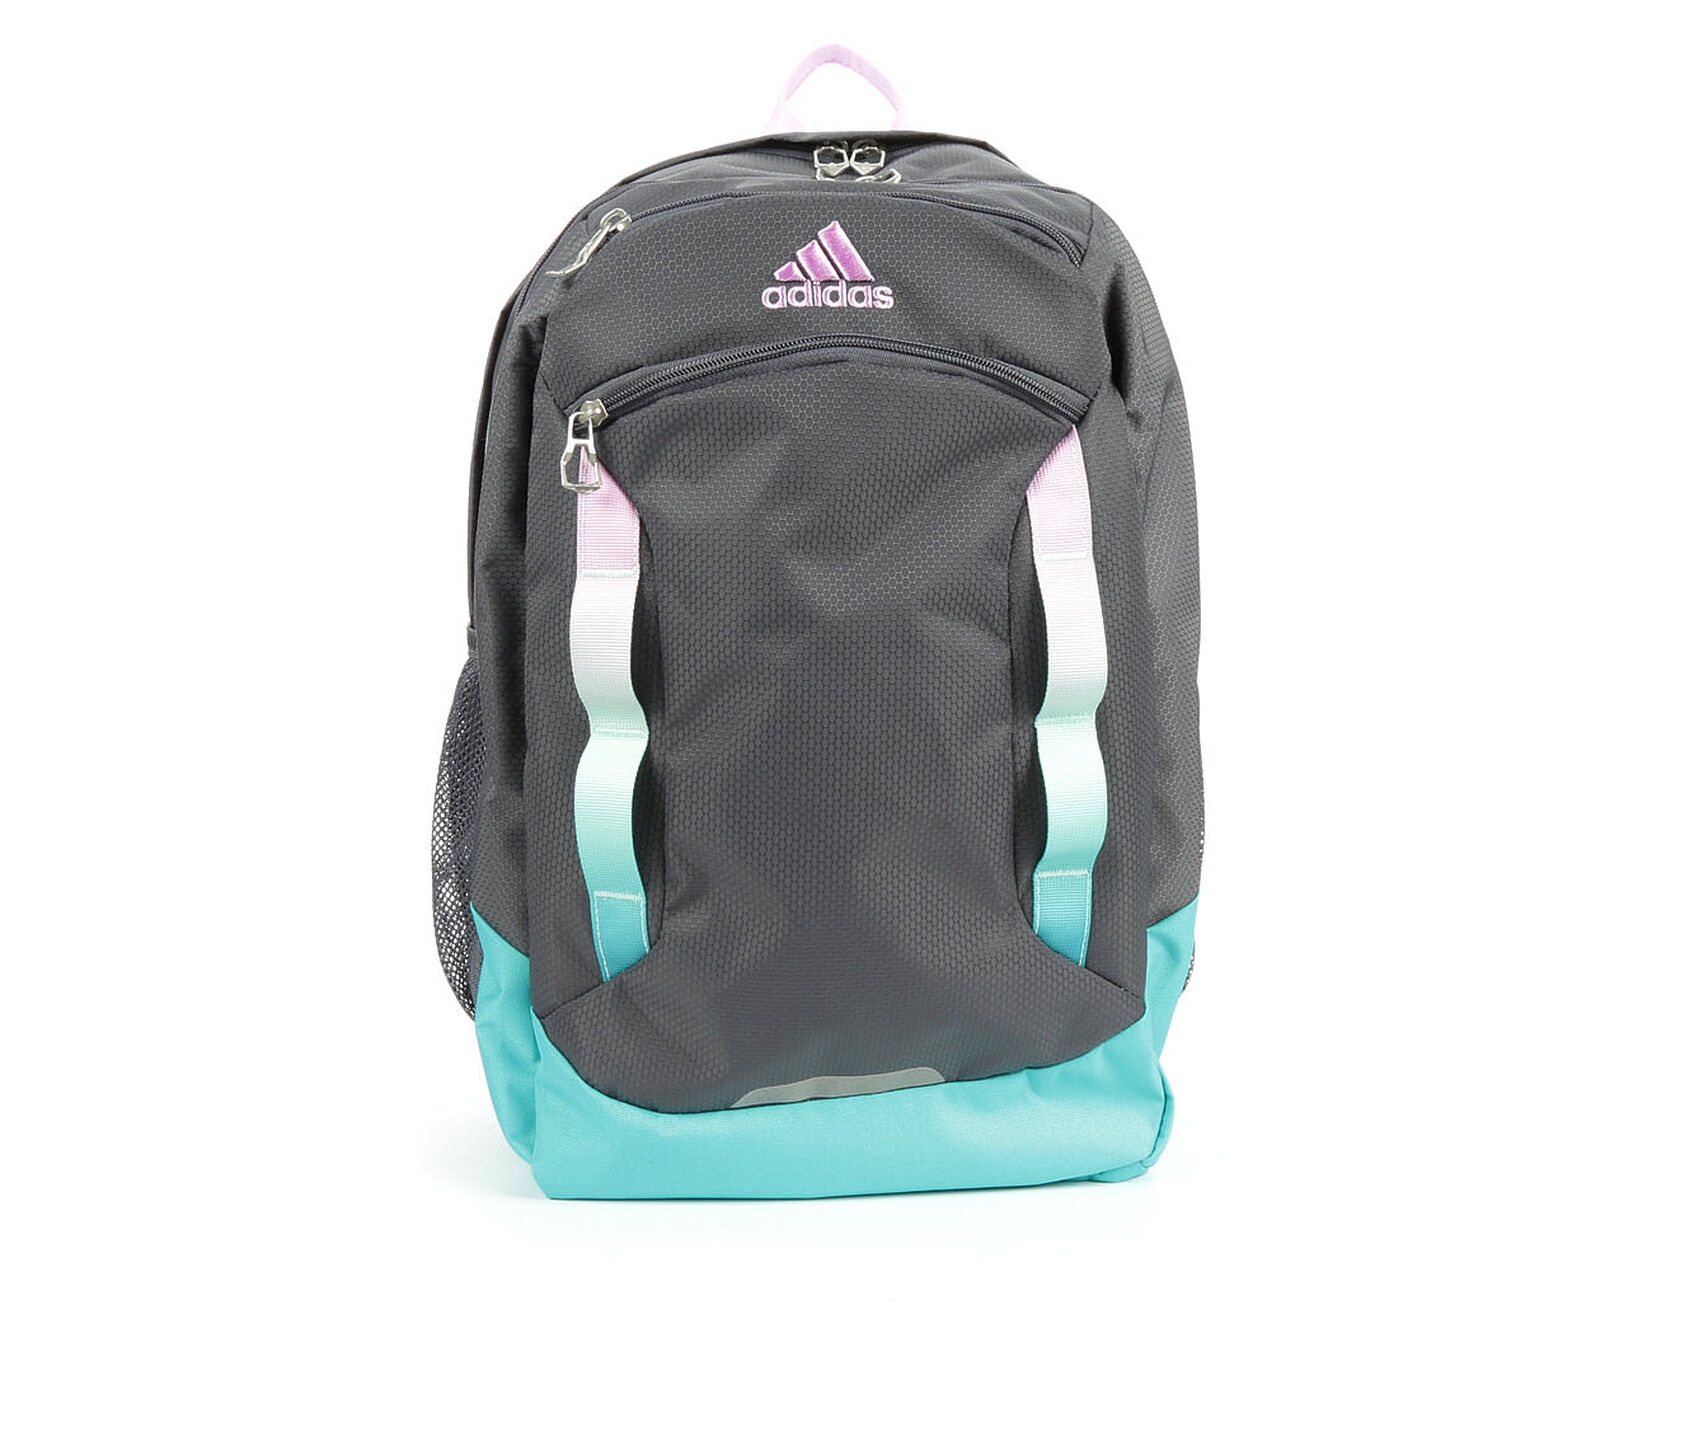 Adidas Excel IV Backpack. Previous a3d6b8af3a451